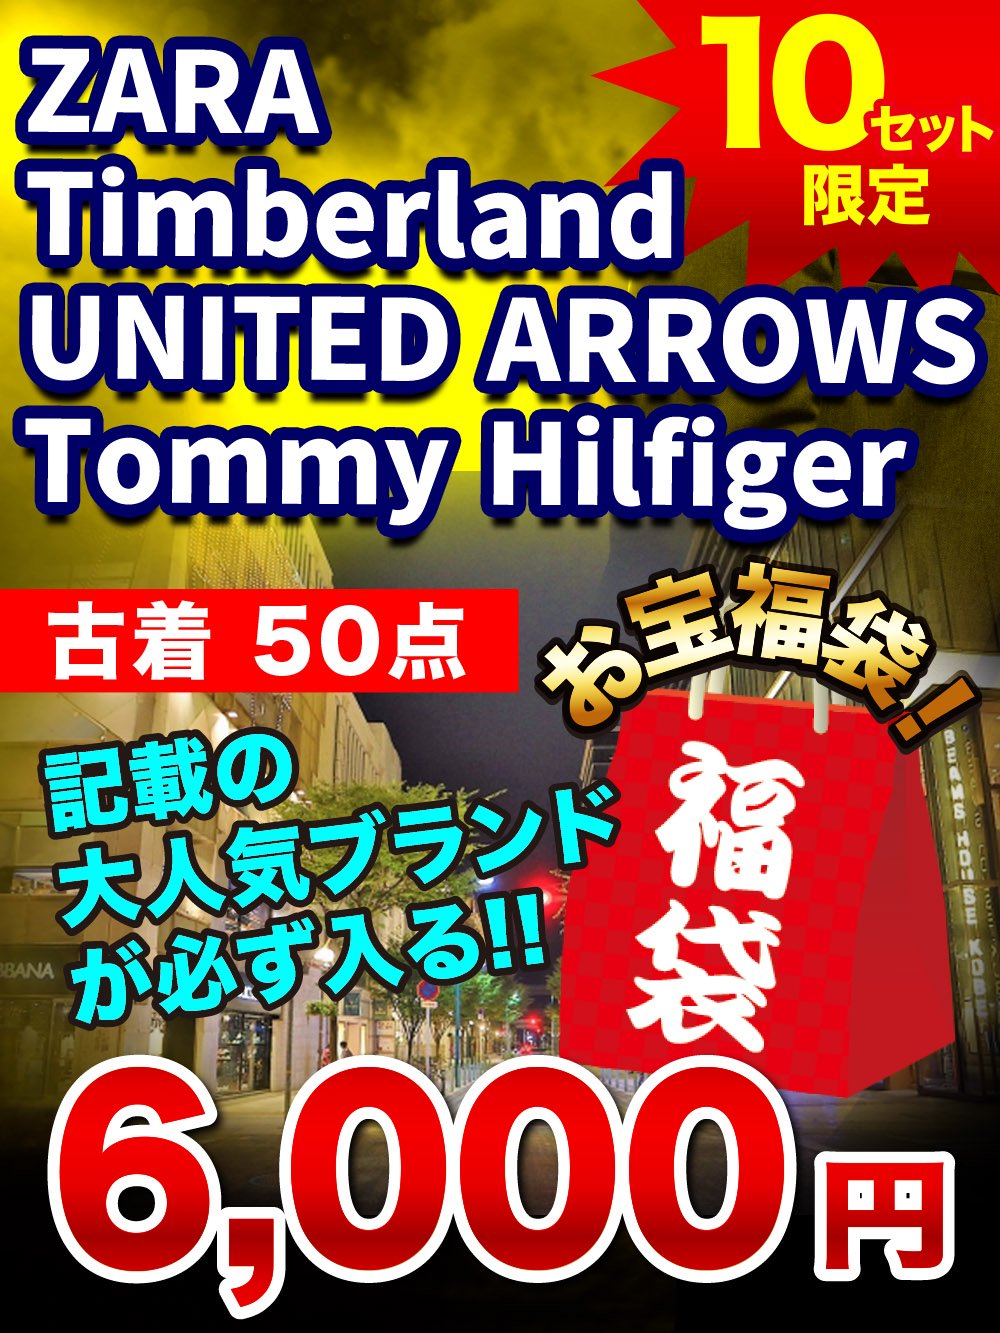 【ZARA・UNITED ARROWS・Tommy Hilfiger・Timberland】【限定10セット】【50点】【古着】記載の大人気ブランド必ずはいるお宝福袋!【6000円】